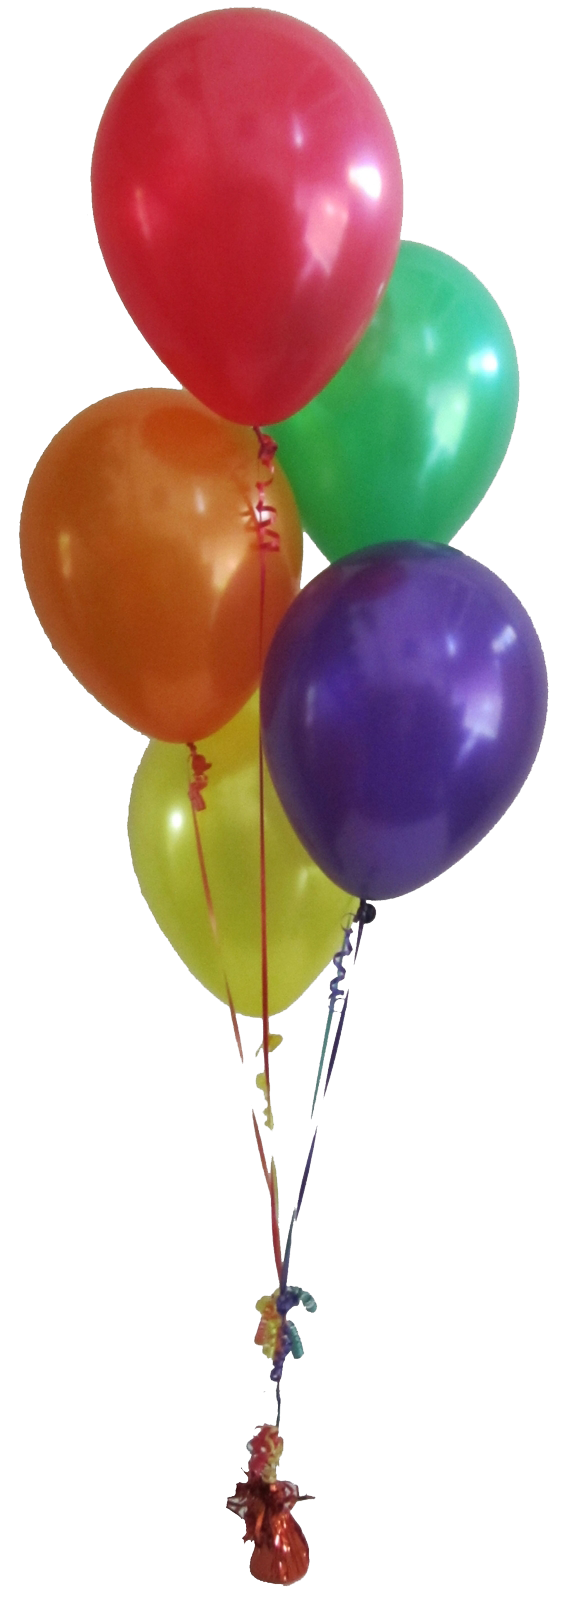 balloons for opening